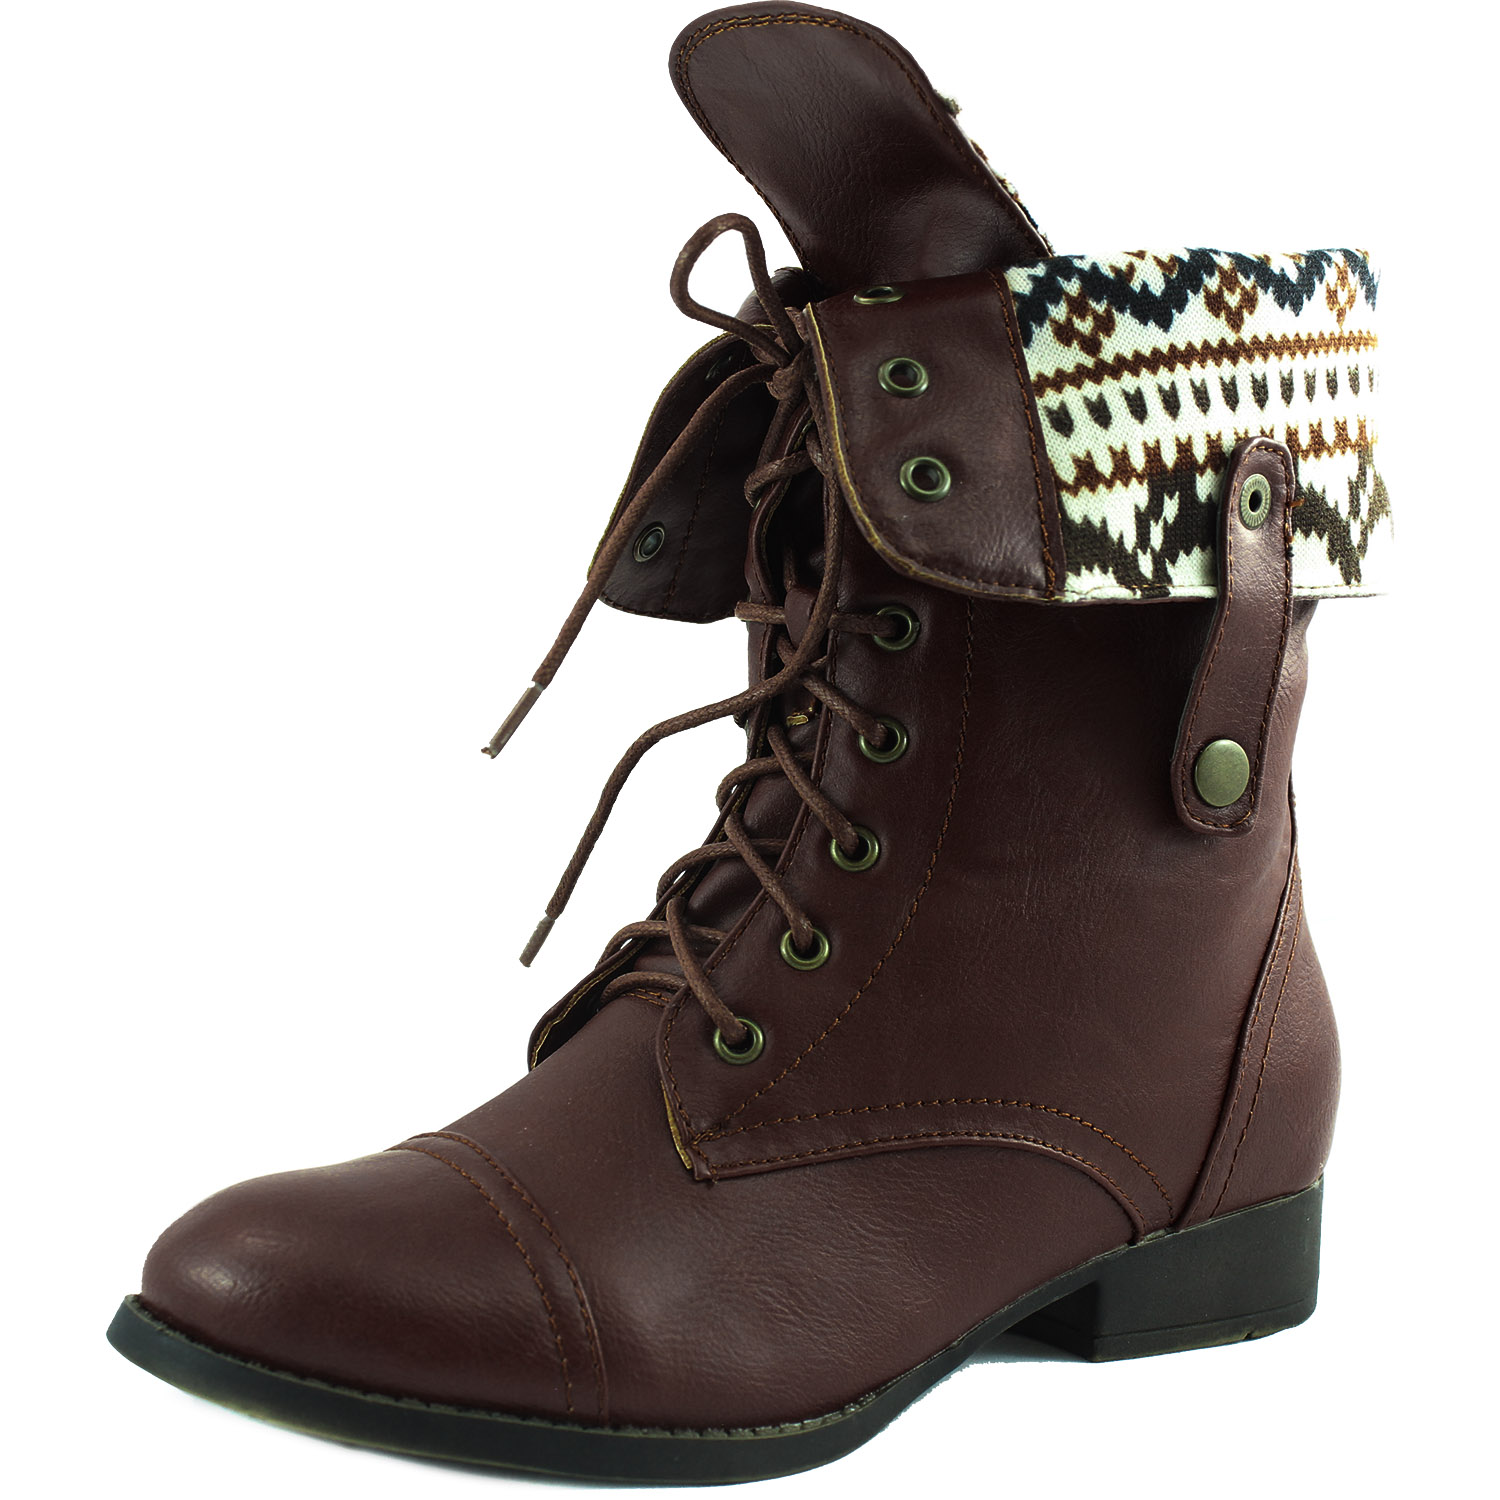 Lace Up Fold Over Round Toe Military Combat Boot Dark Brown Color, Brown, 6 B(M) US